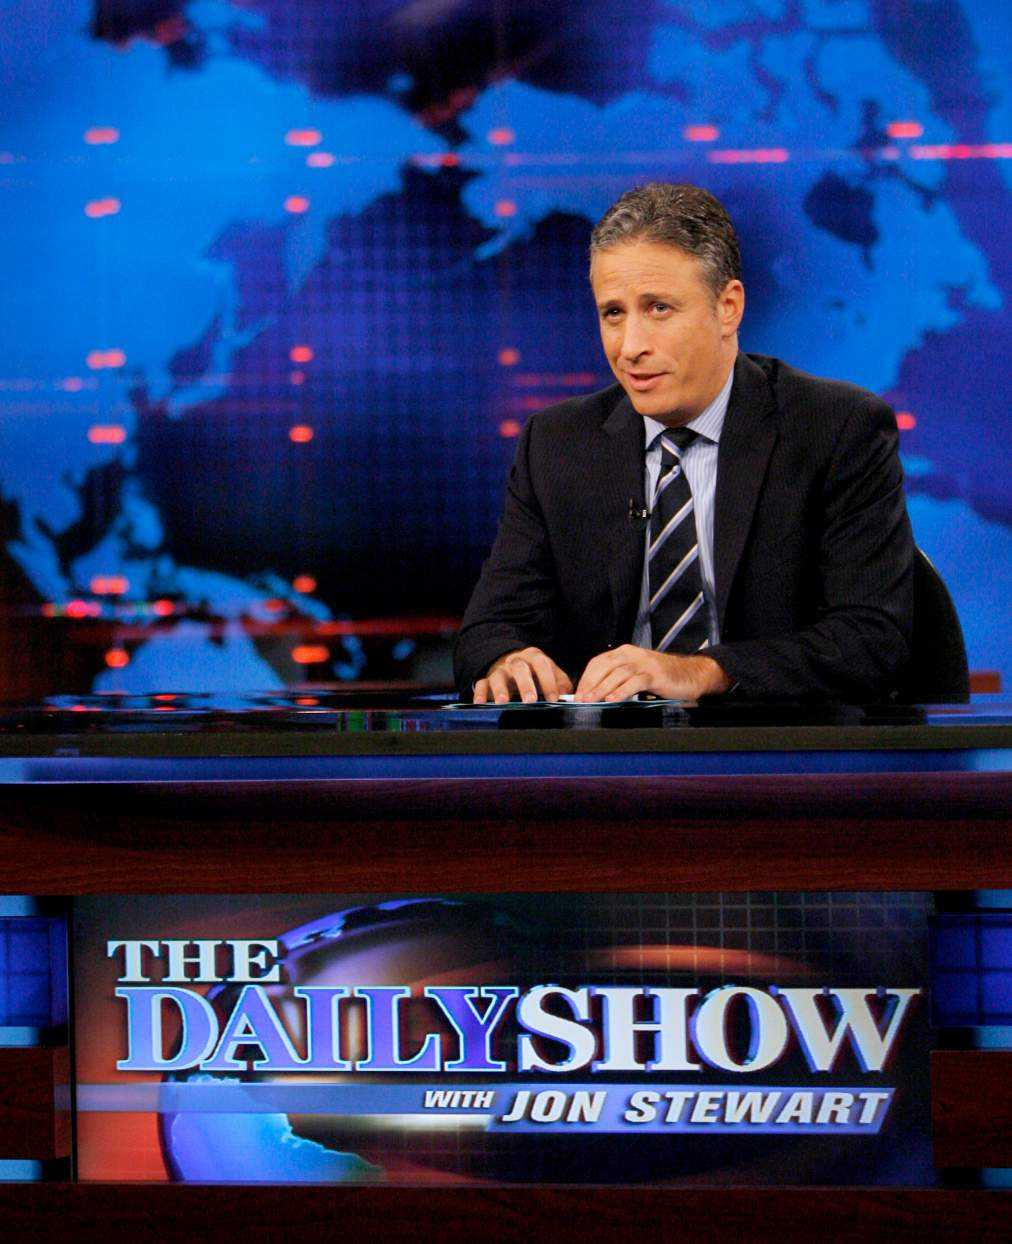 The Daily Show Set Going To D.C.'s Newseum | Daily Show